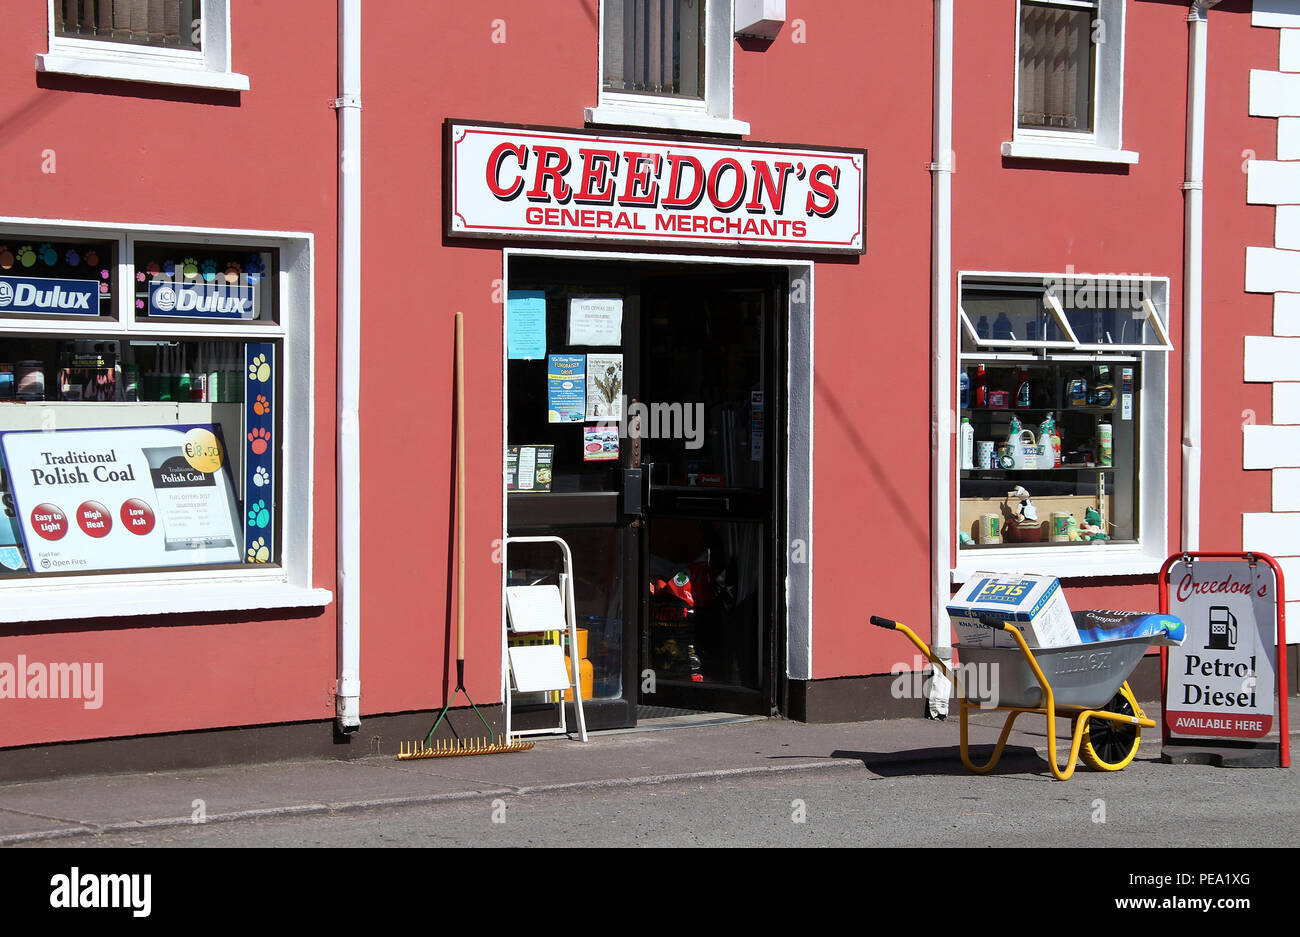 General merchants shop in Ireland - Stock Image